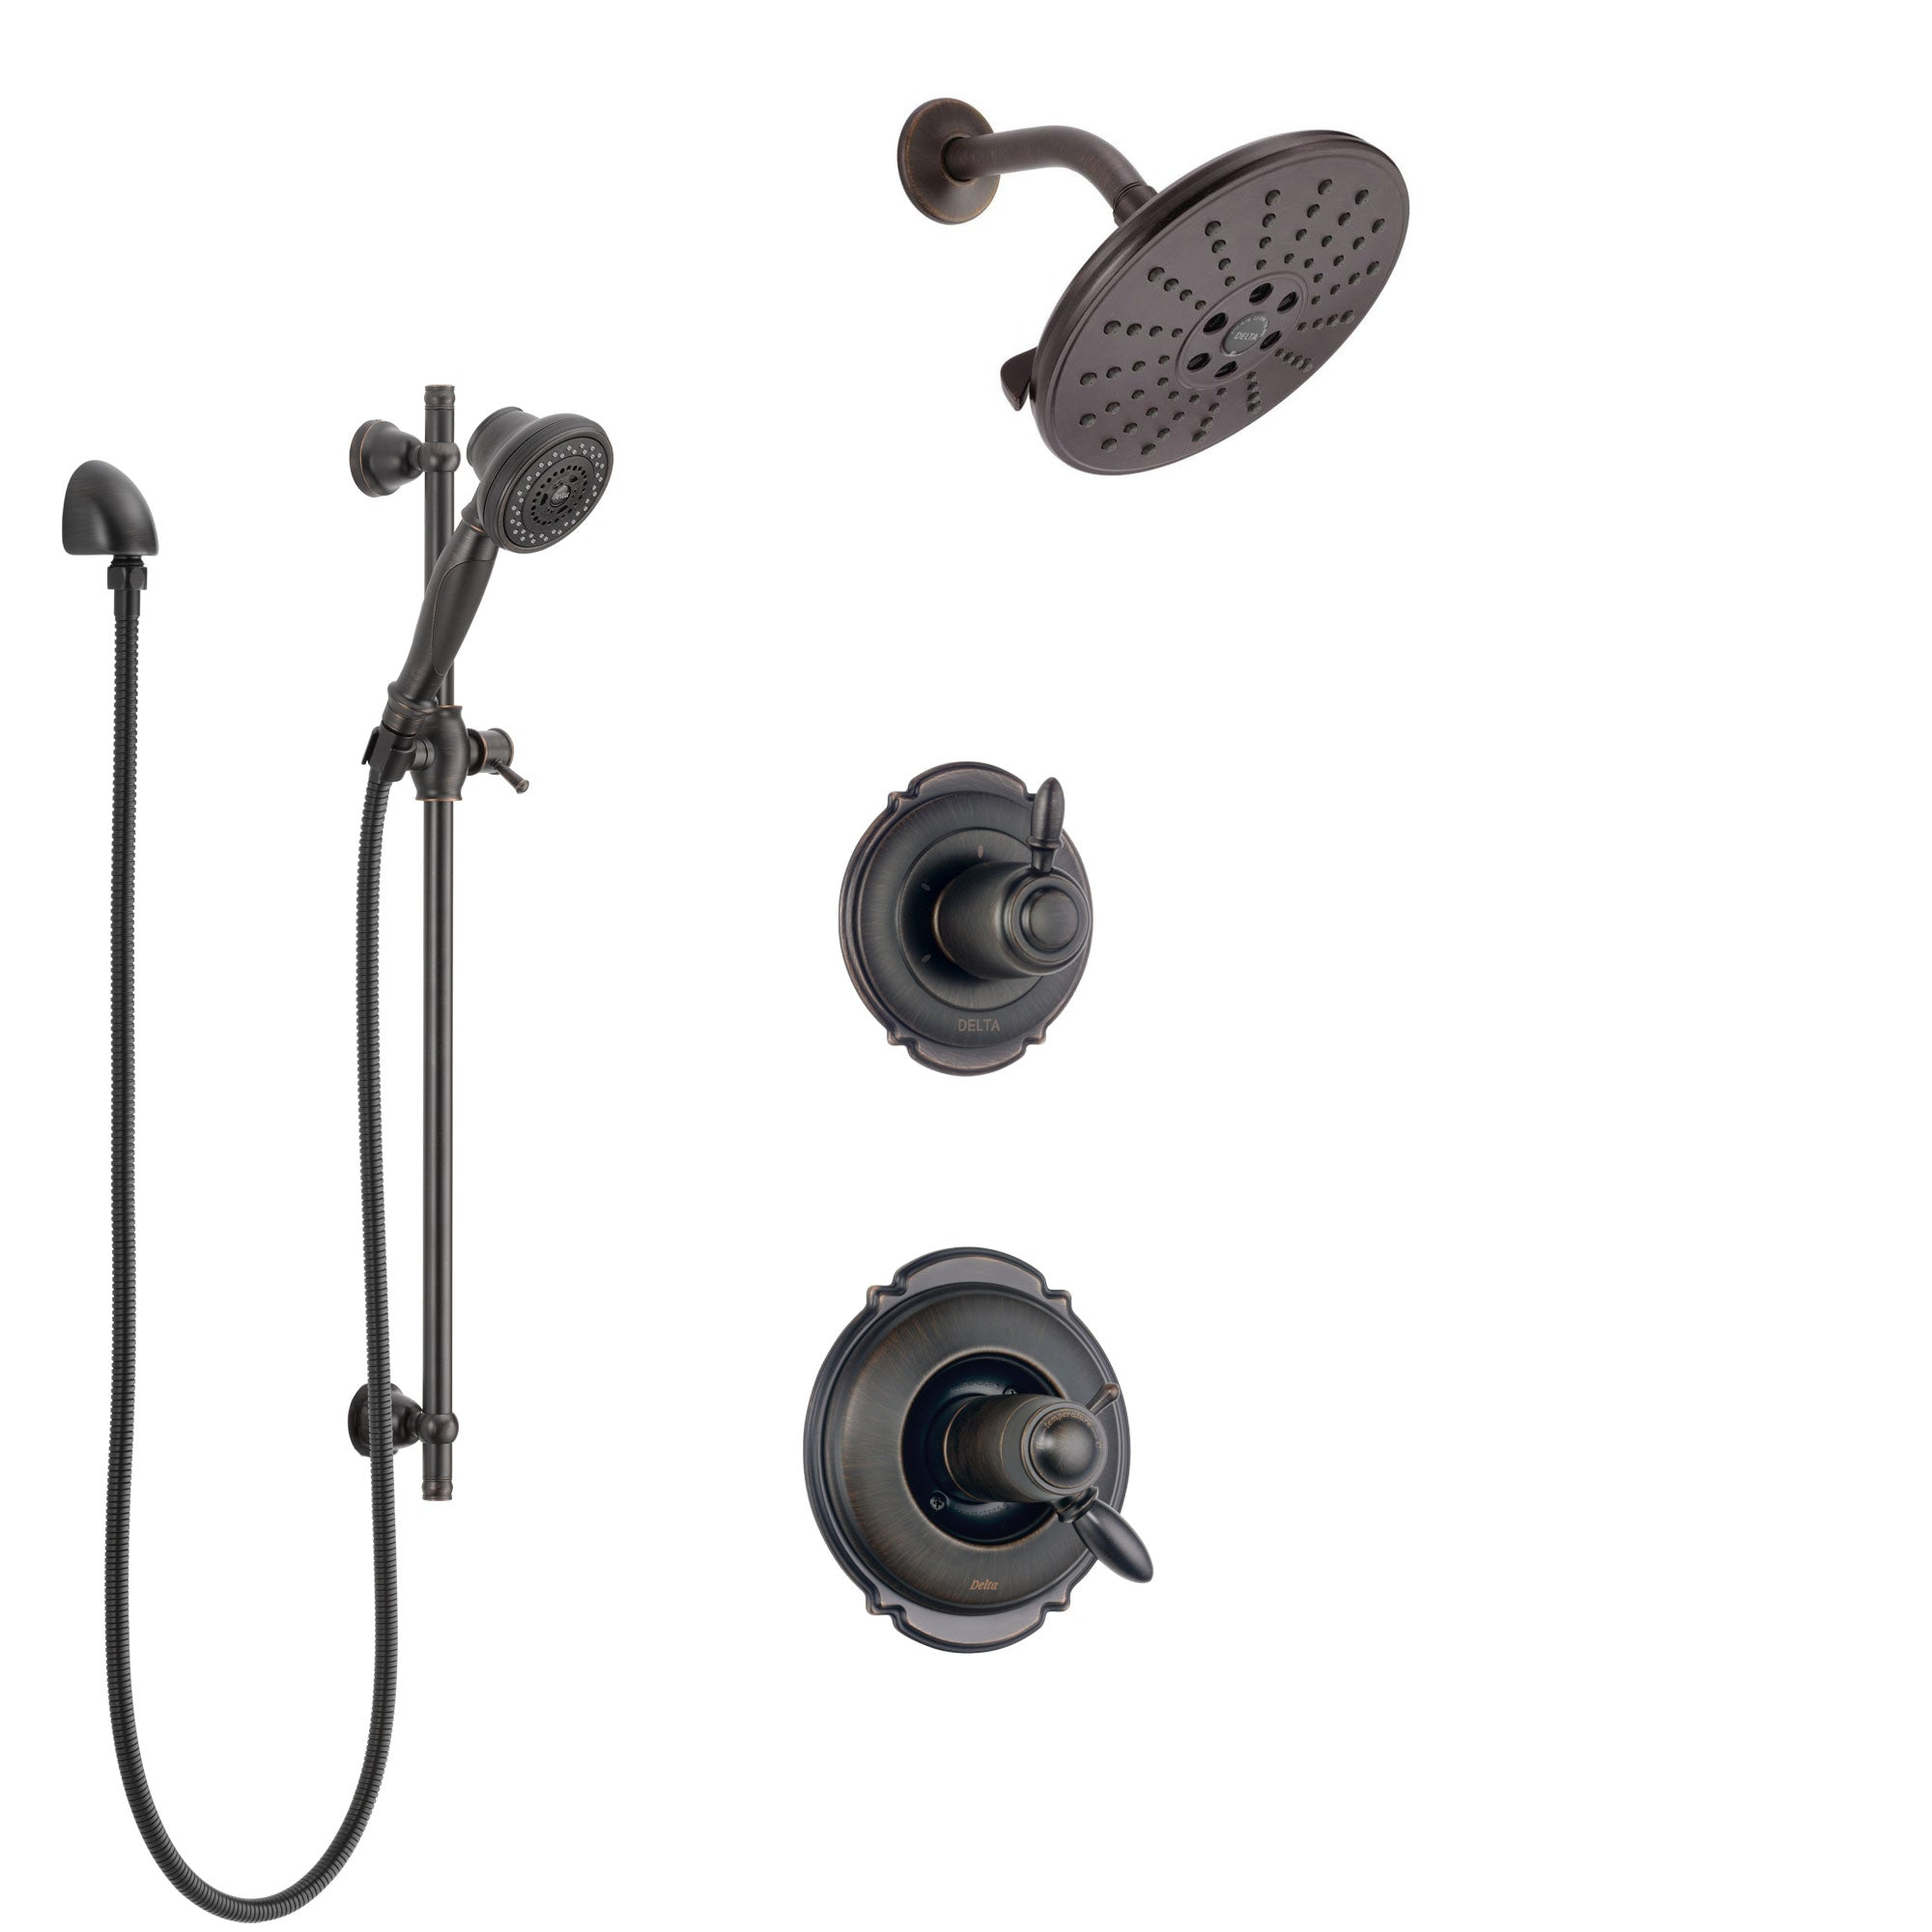 Delta Victorian Venetian Bronze Shower System with Dual Thermostatic Control Handle, Diverter, Showerhead, and Hand Shower with Slidebar SS17T551RB8